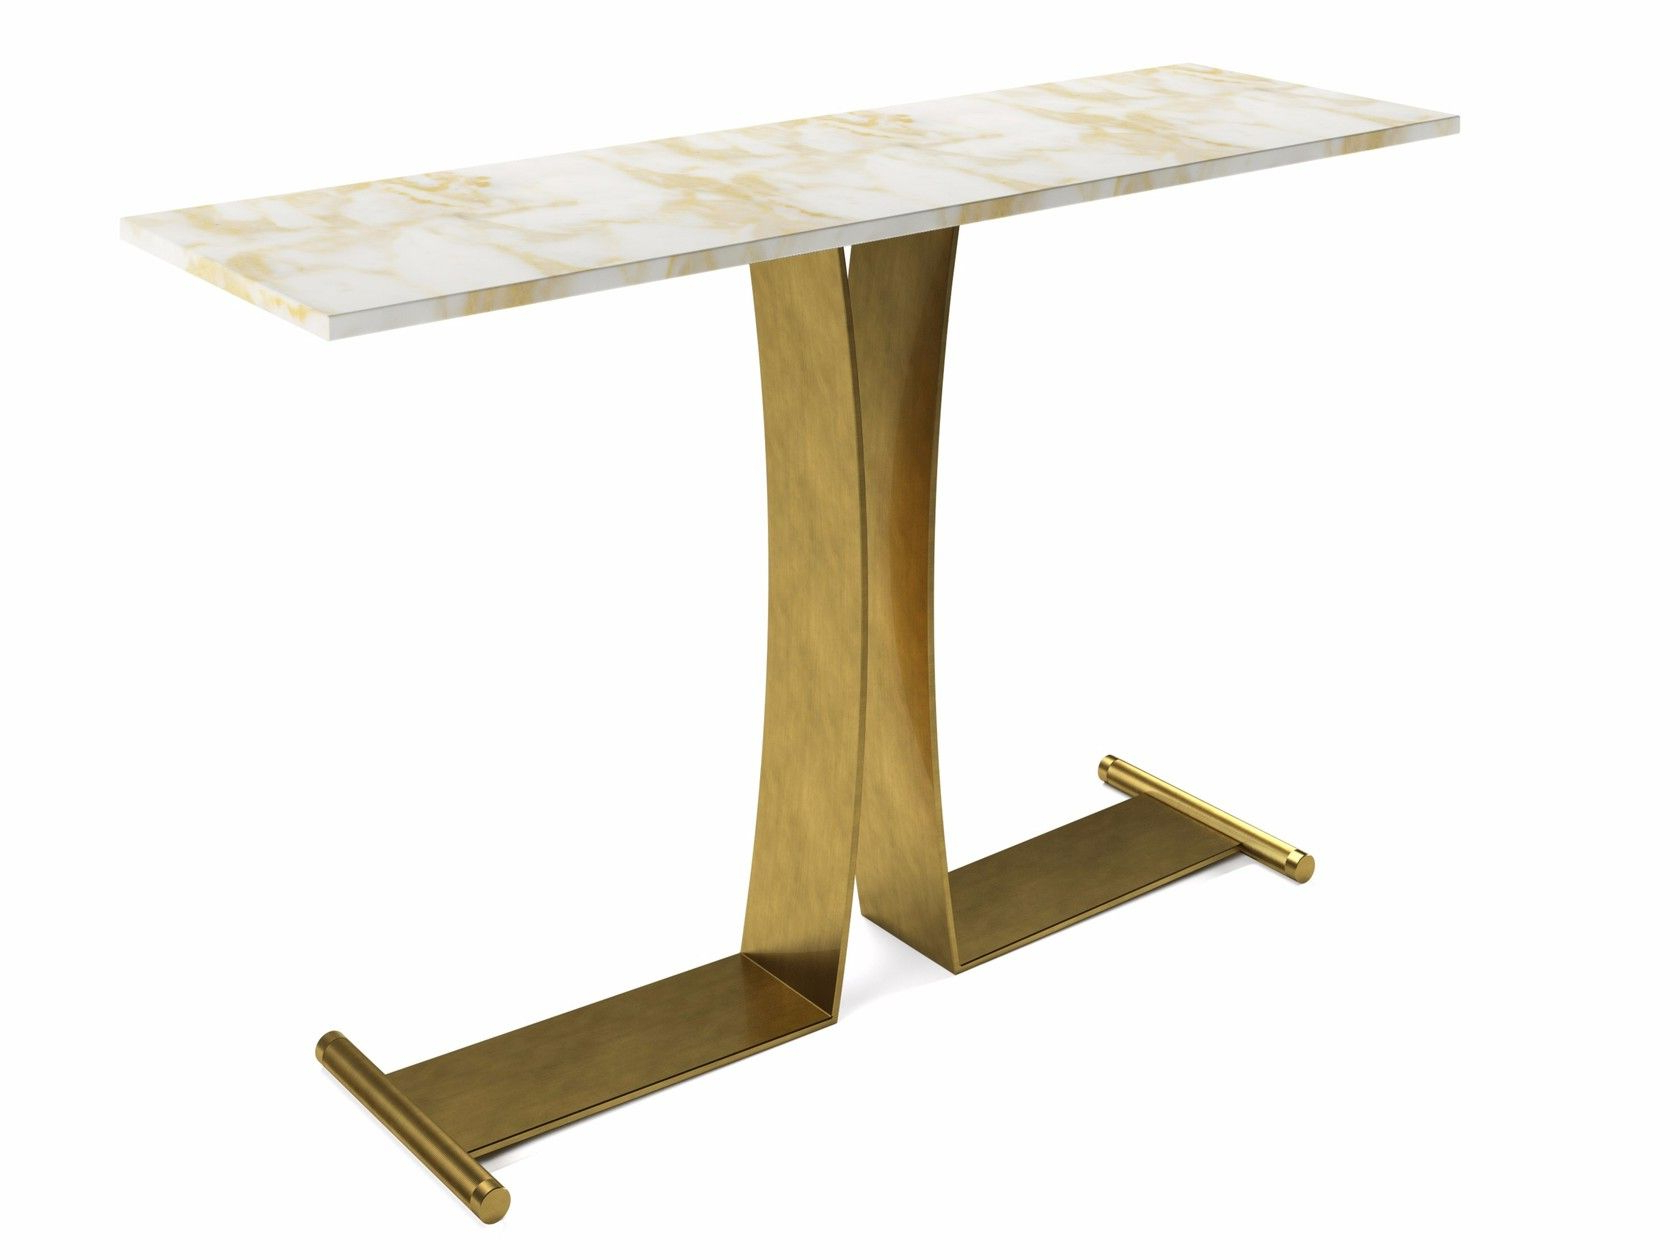 Guy | Console Table In 2018 | 1gja Console Tables | Pinterest Inside Parsons White Marble Top & Elm Base 48x16 Console Tables (View 11 of 20)